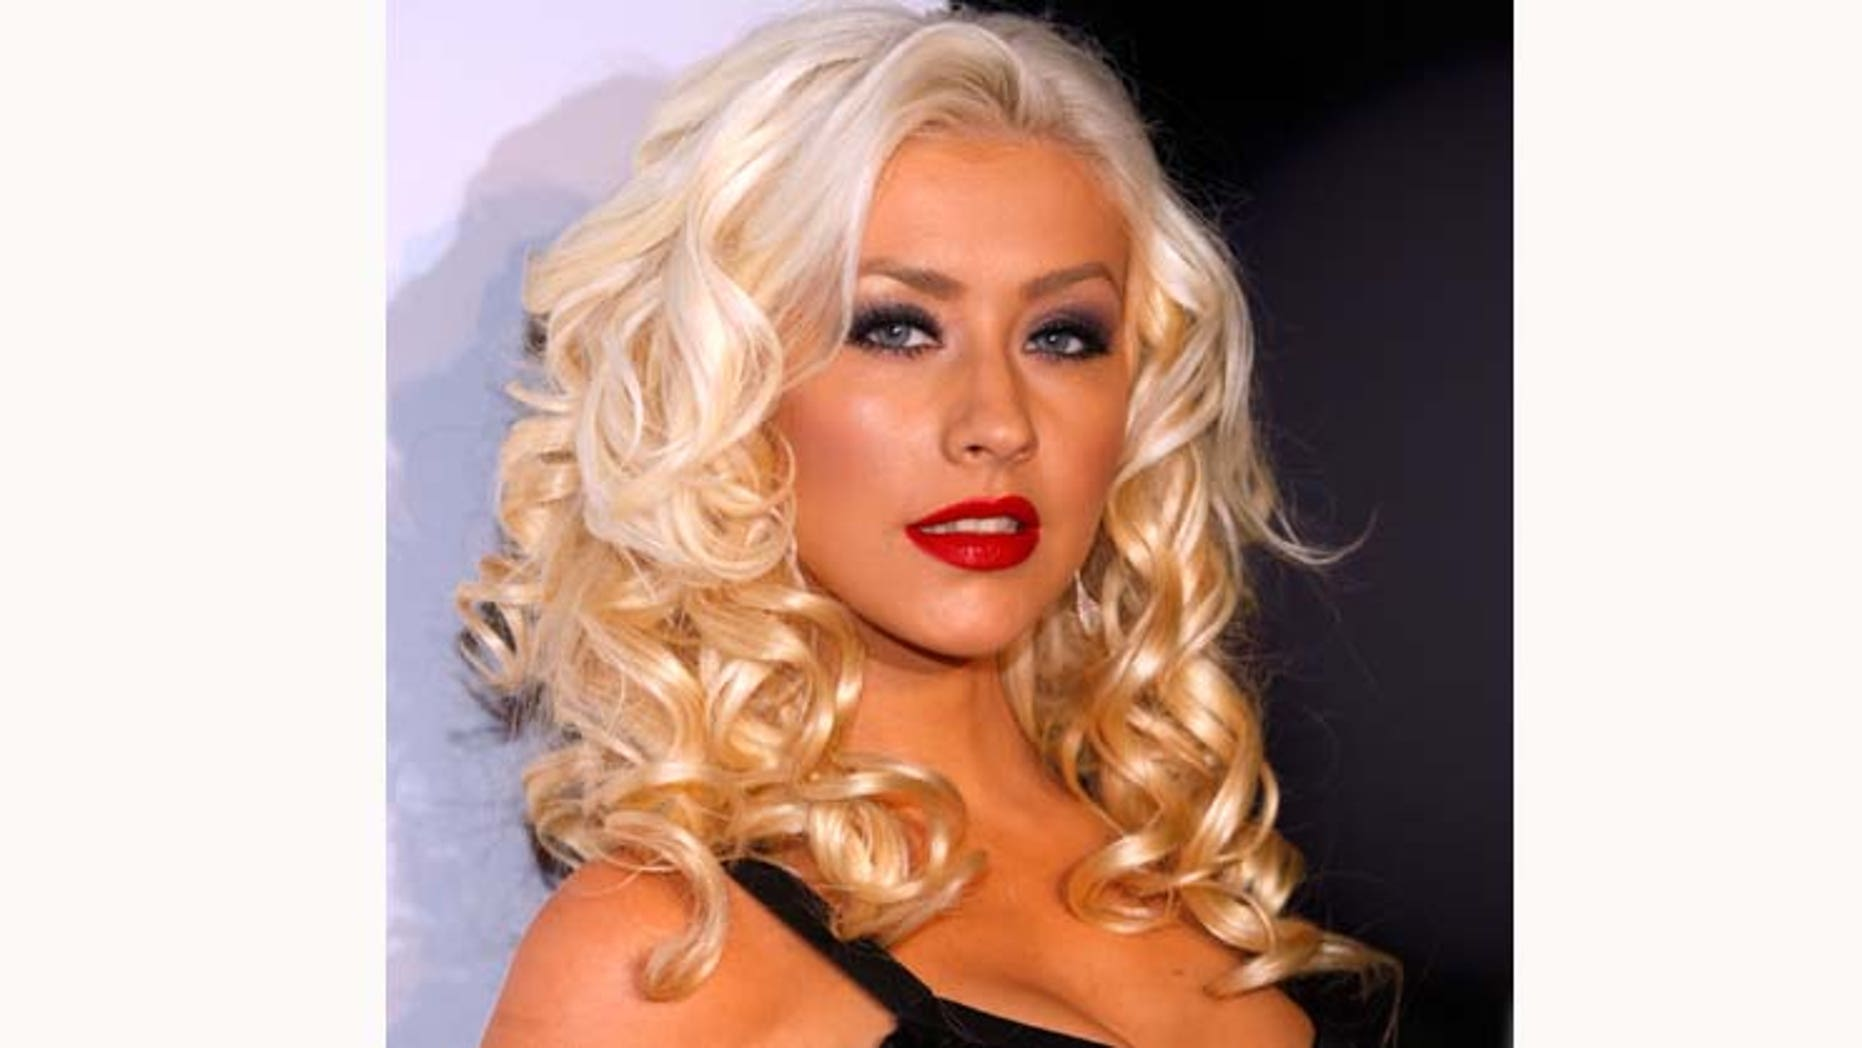 Christina Aguilera Leaked Nude Photos 96